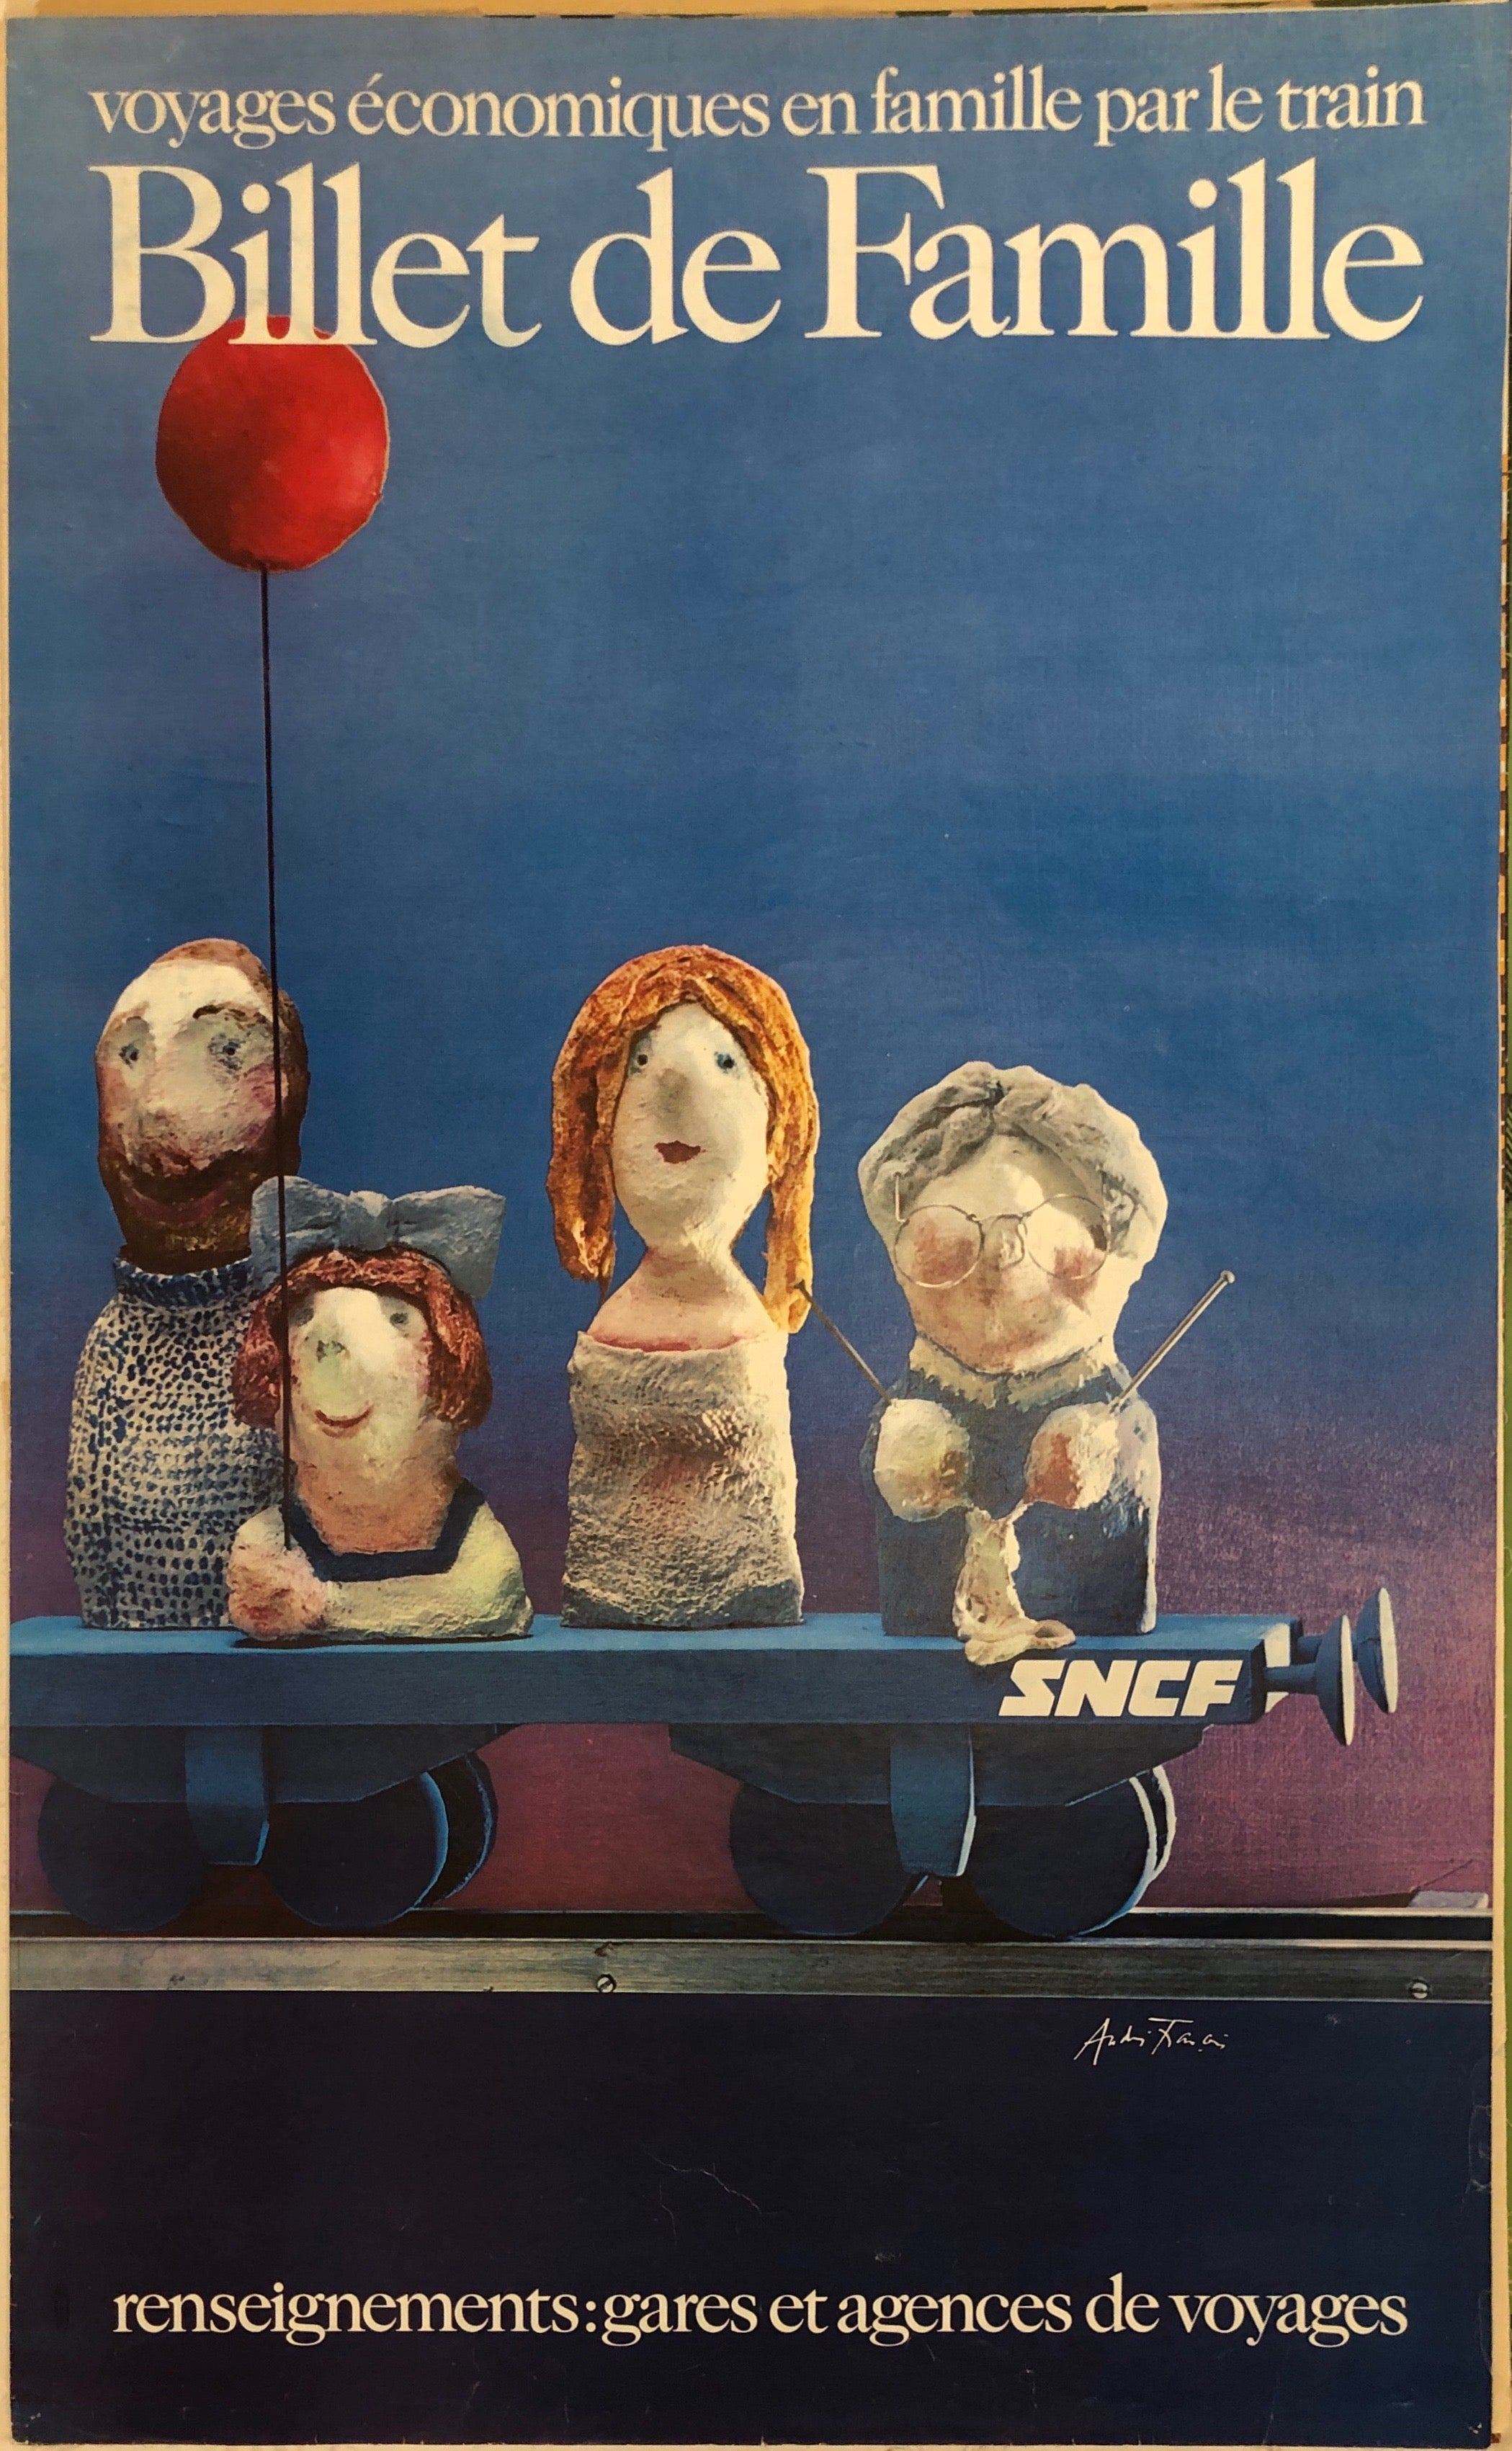 A blue background has a family of four at the front in clay sculptures. They are cruedly made. They are on a tiny cart, meant to be a train. The font is bold and big, at the top.